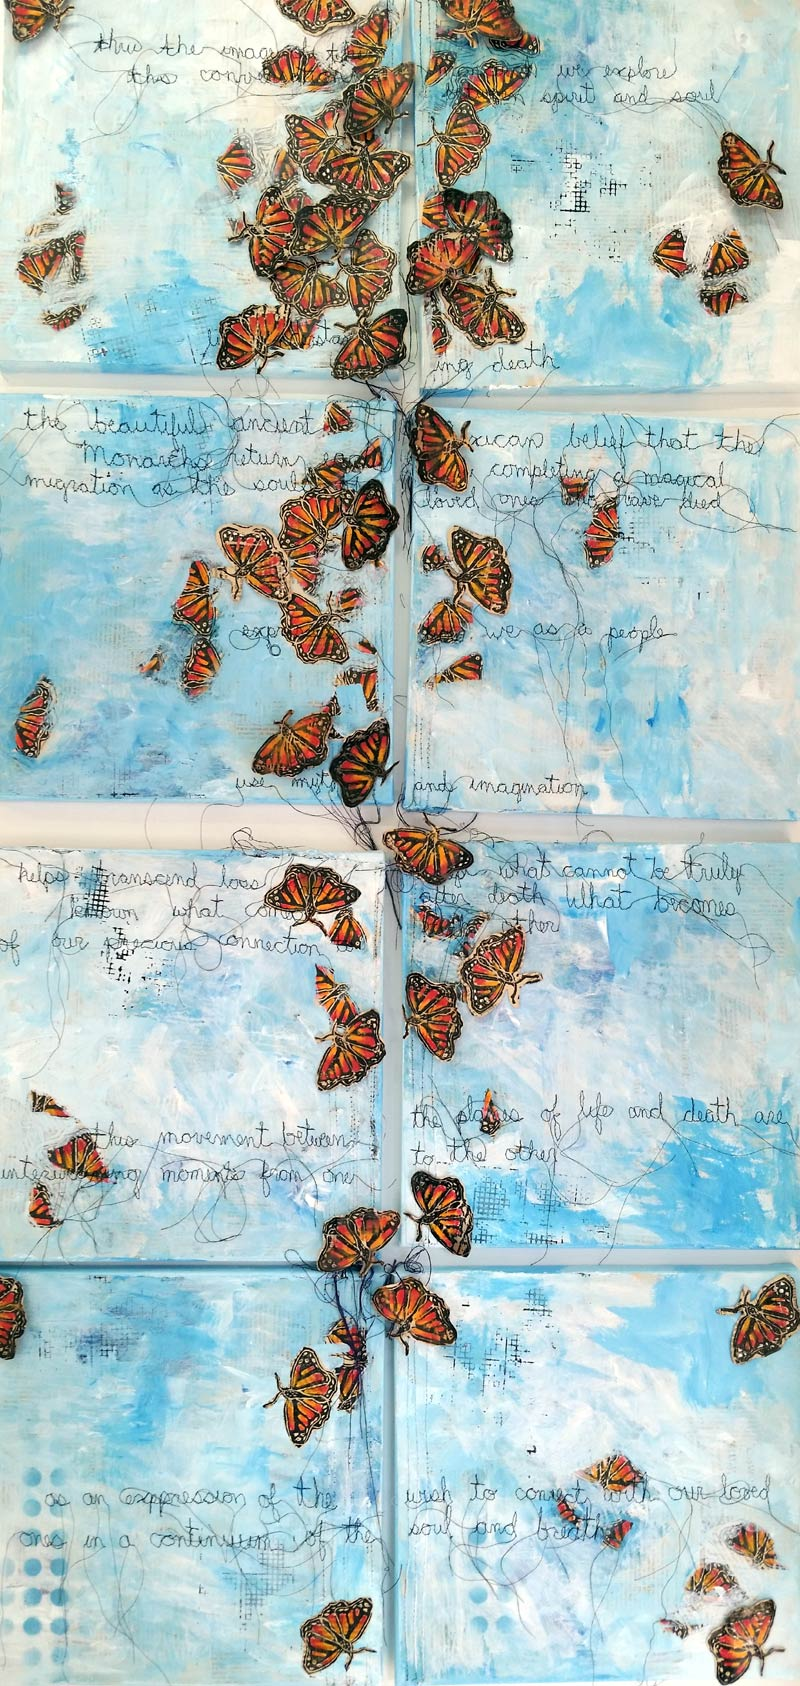 Stephanie Hilvitz collage painting of Monarchs integrates sewn reflections of migration